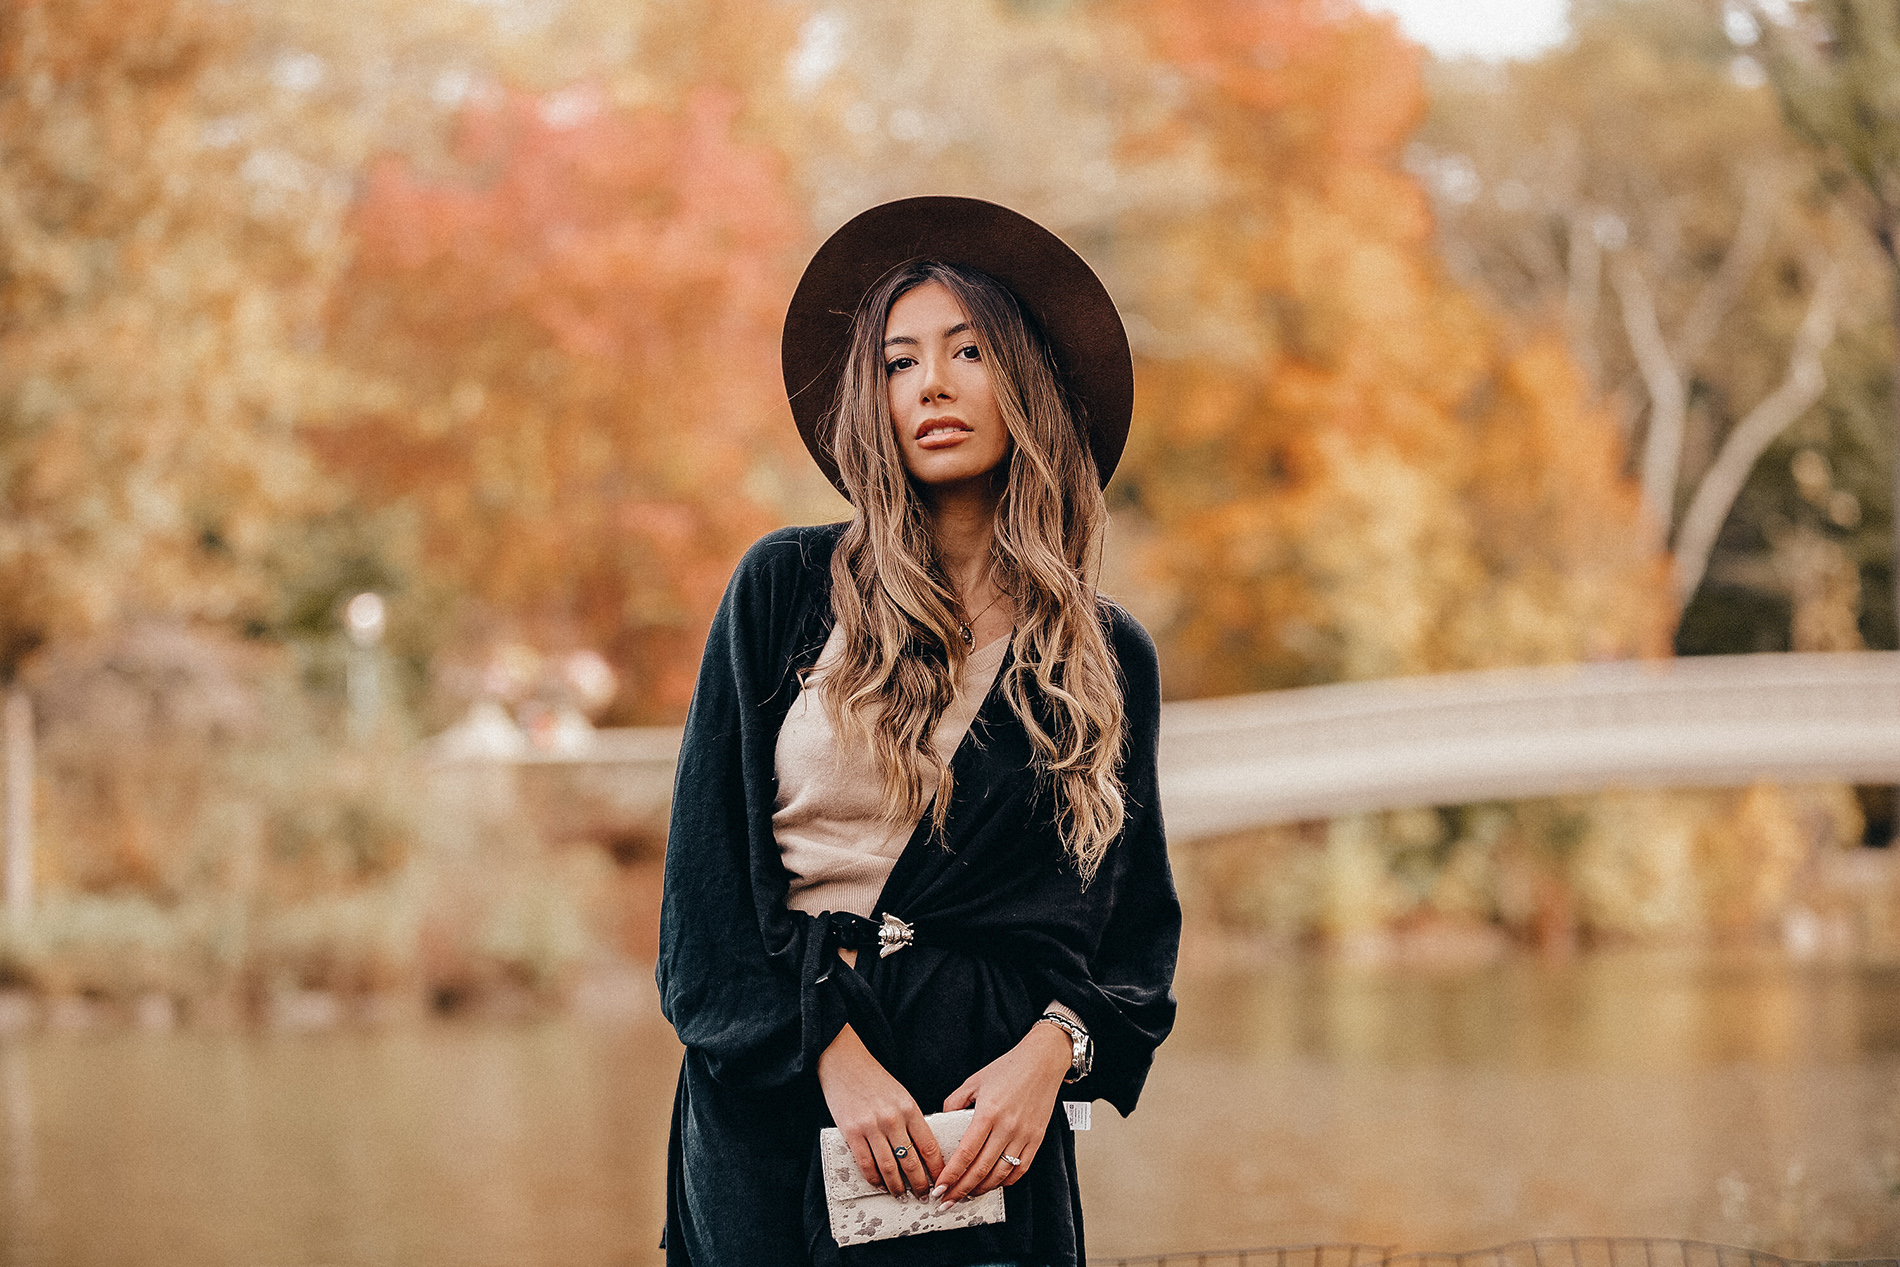 MerSea Luxe Collection. Ulia Ali blogger. Fall Inspiration photoshoot in Central Park, New York,